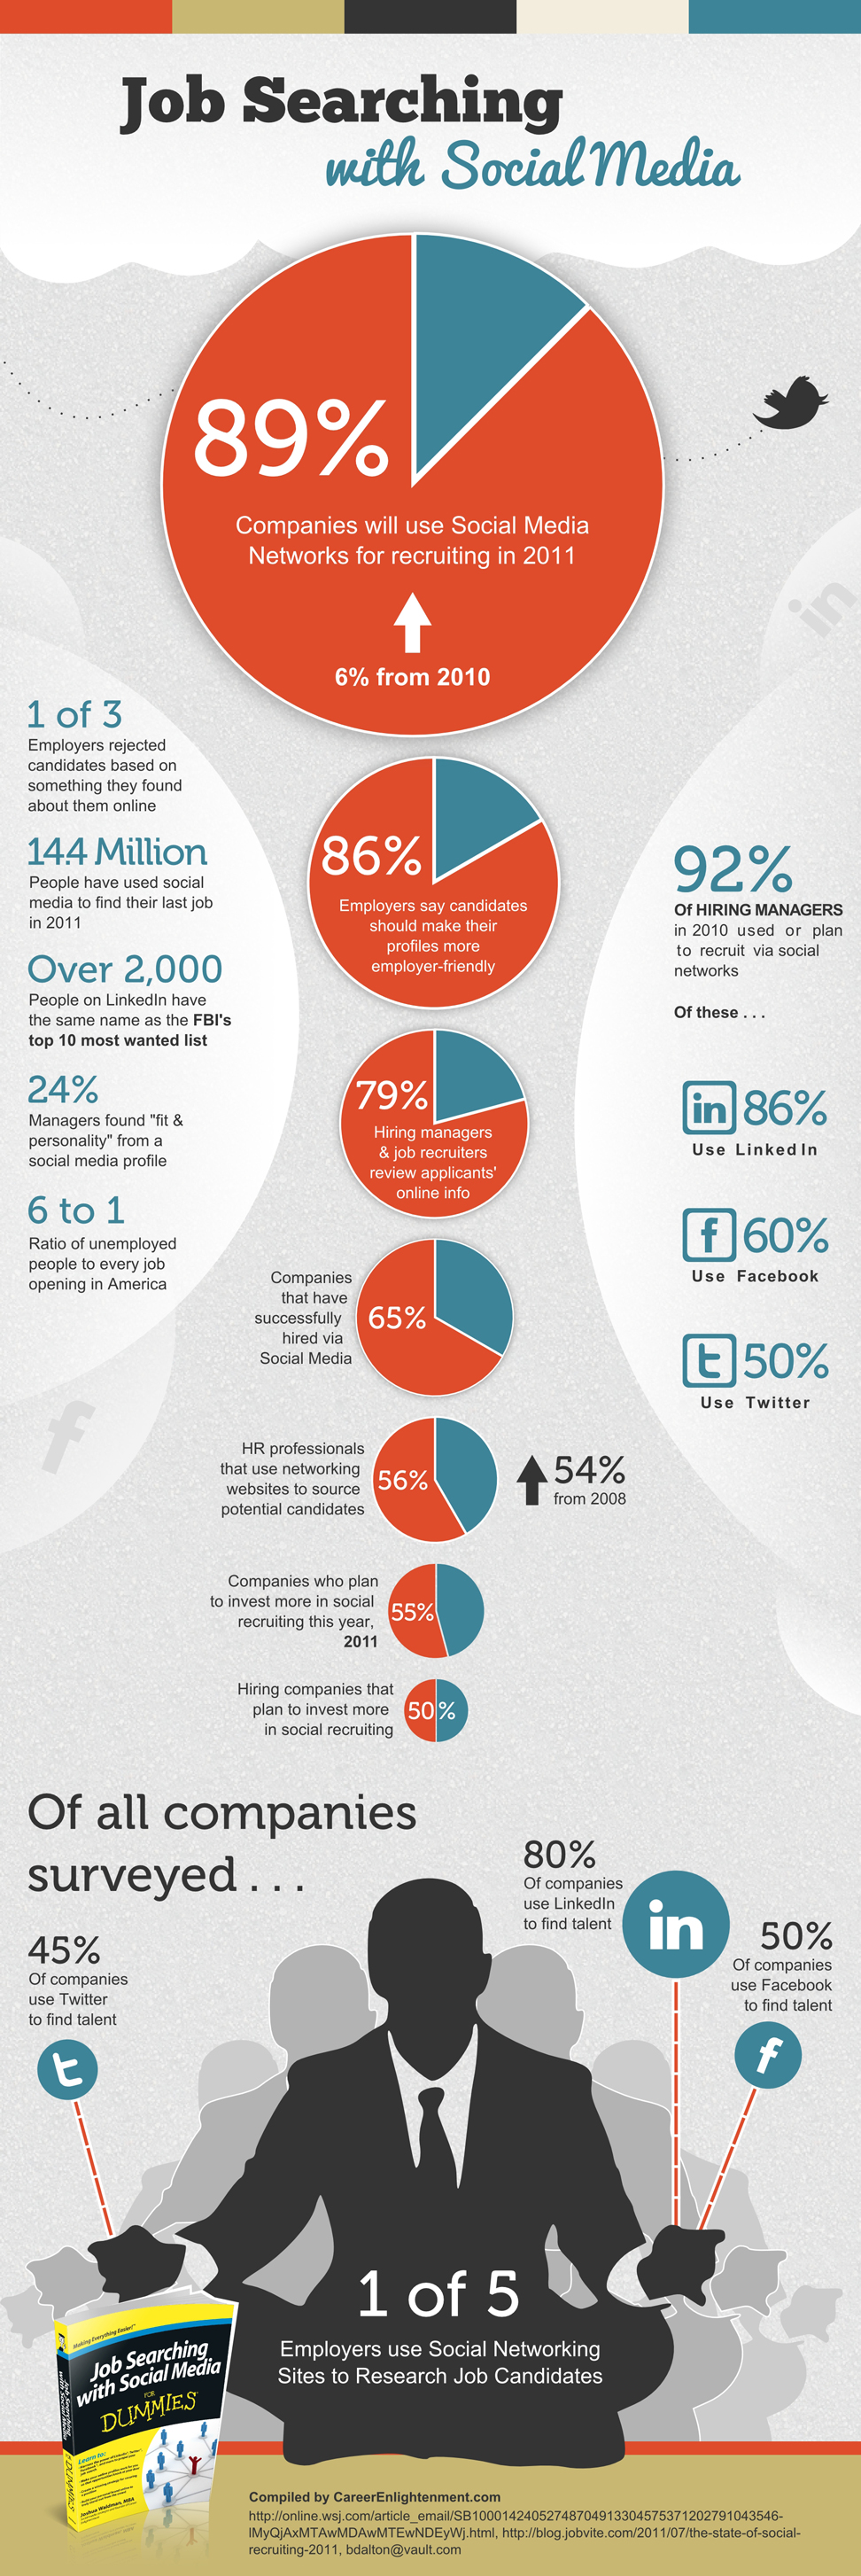 social media for job hunters netweave social job searching infographic